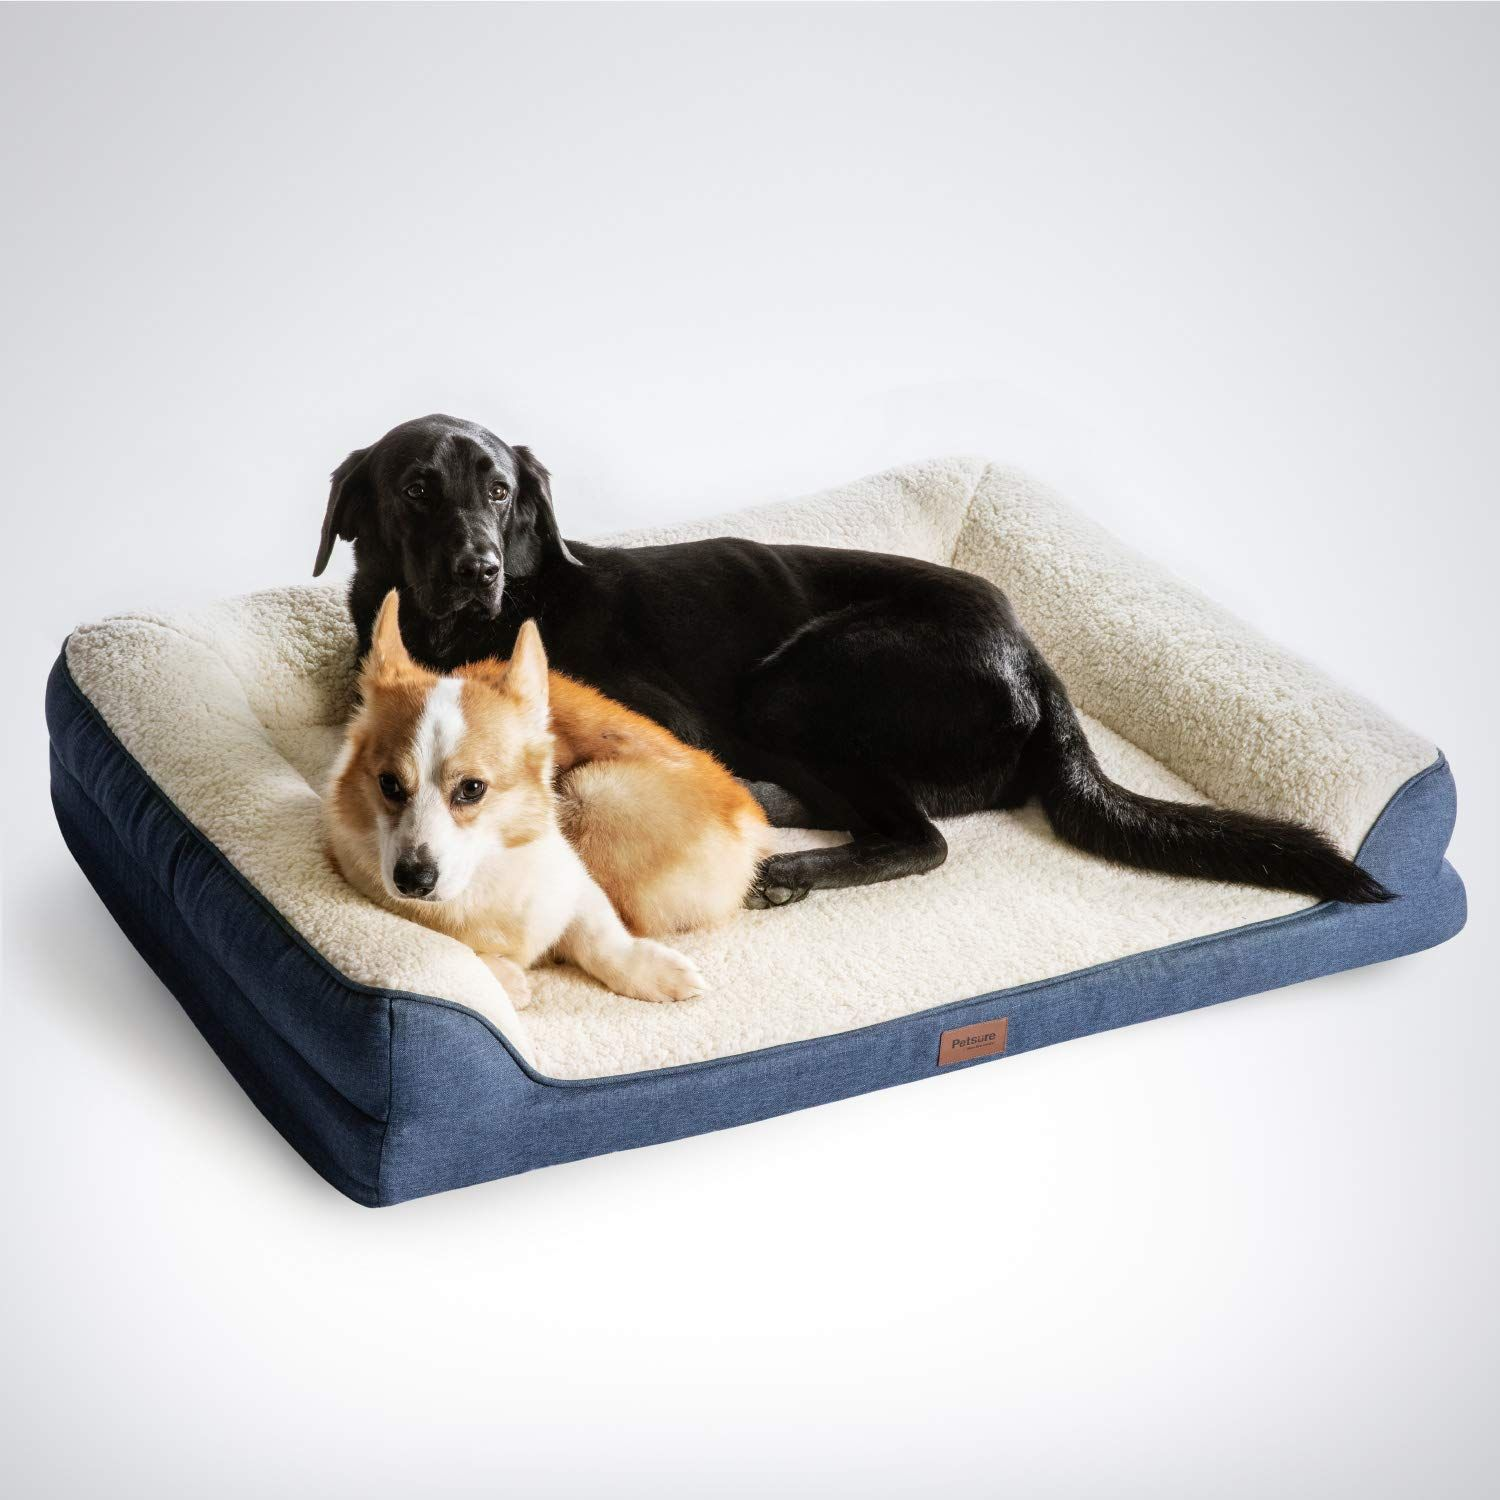 Petsure 28 36 45 Orthopedic Memory Foam Dog Bed For Small